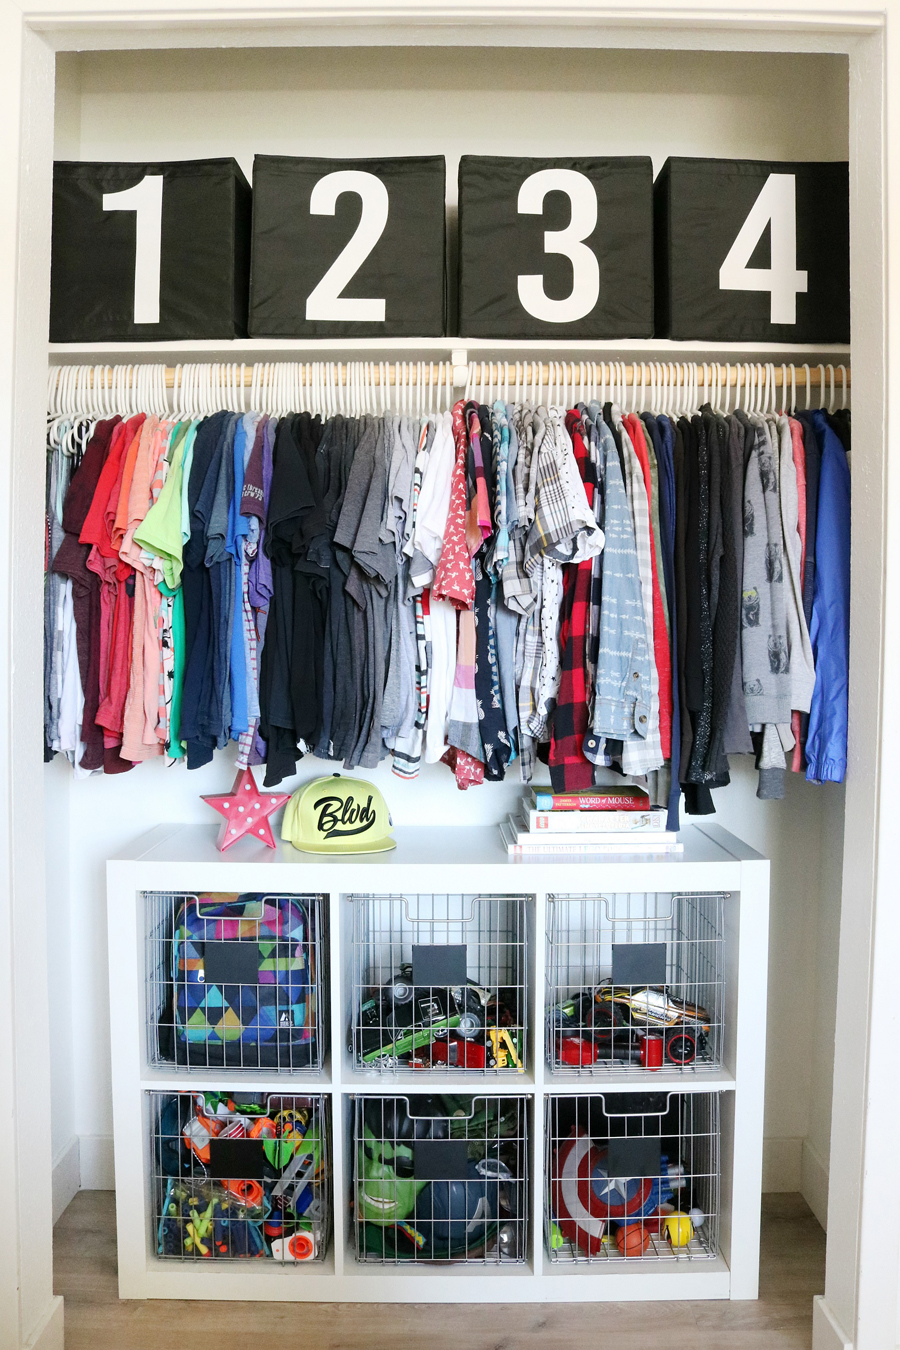 make ideas pinterest cooler ways cool to look how com closet plastic shelves easy decoration gurl tips your clear